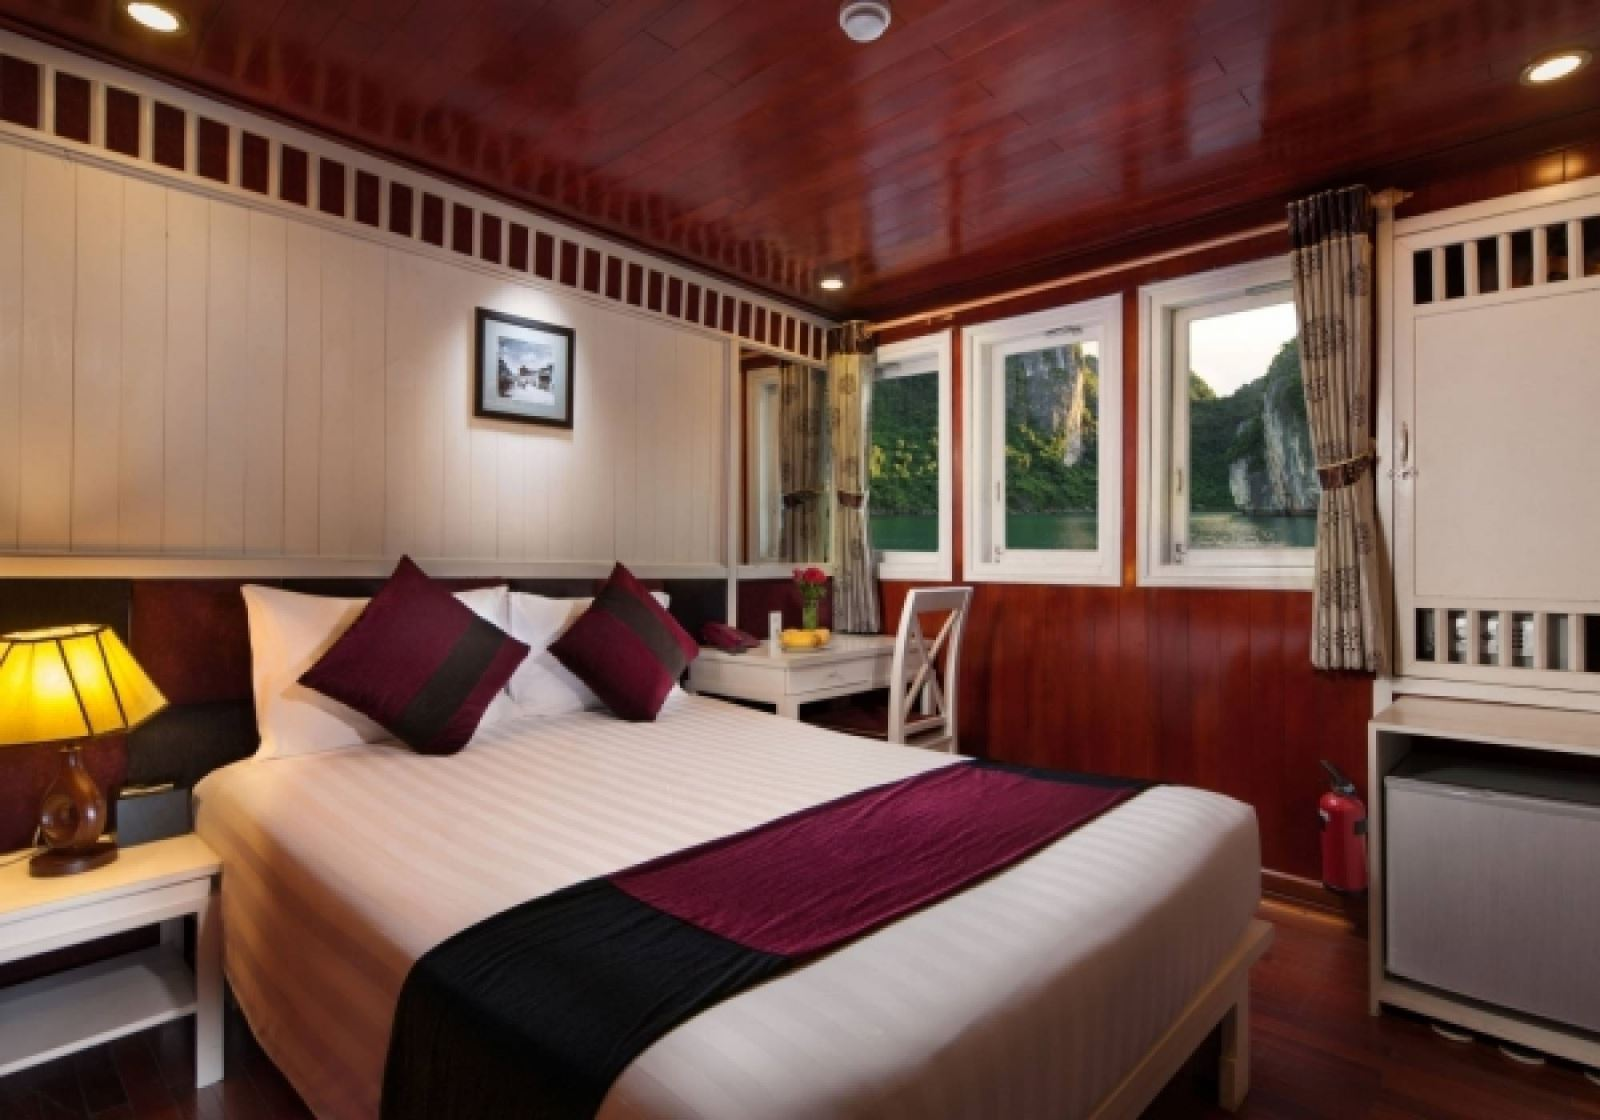 Paloma Cruise - Halong Bay tour for backpackers